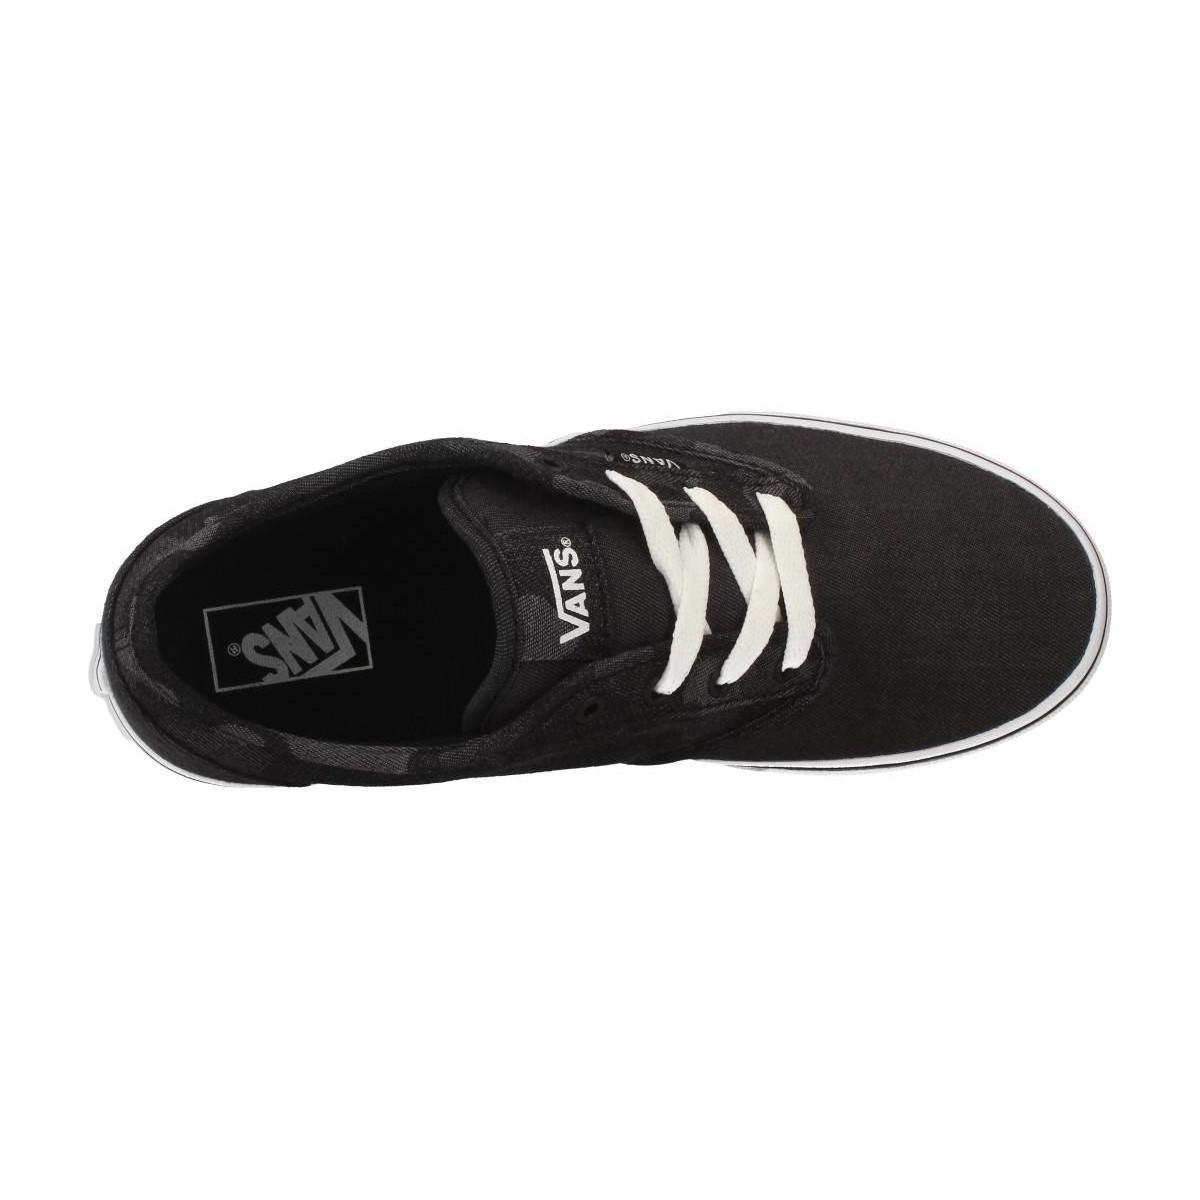 Yt trainers Black Women's Vans Atwood Lyst In Shoes f4x8xPAn